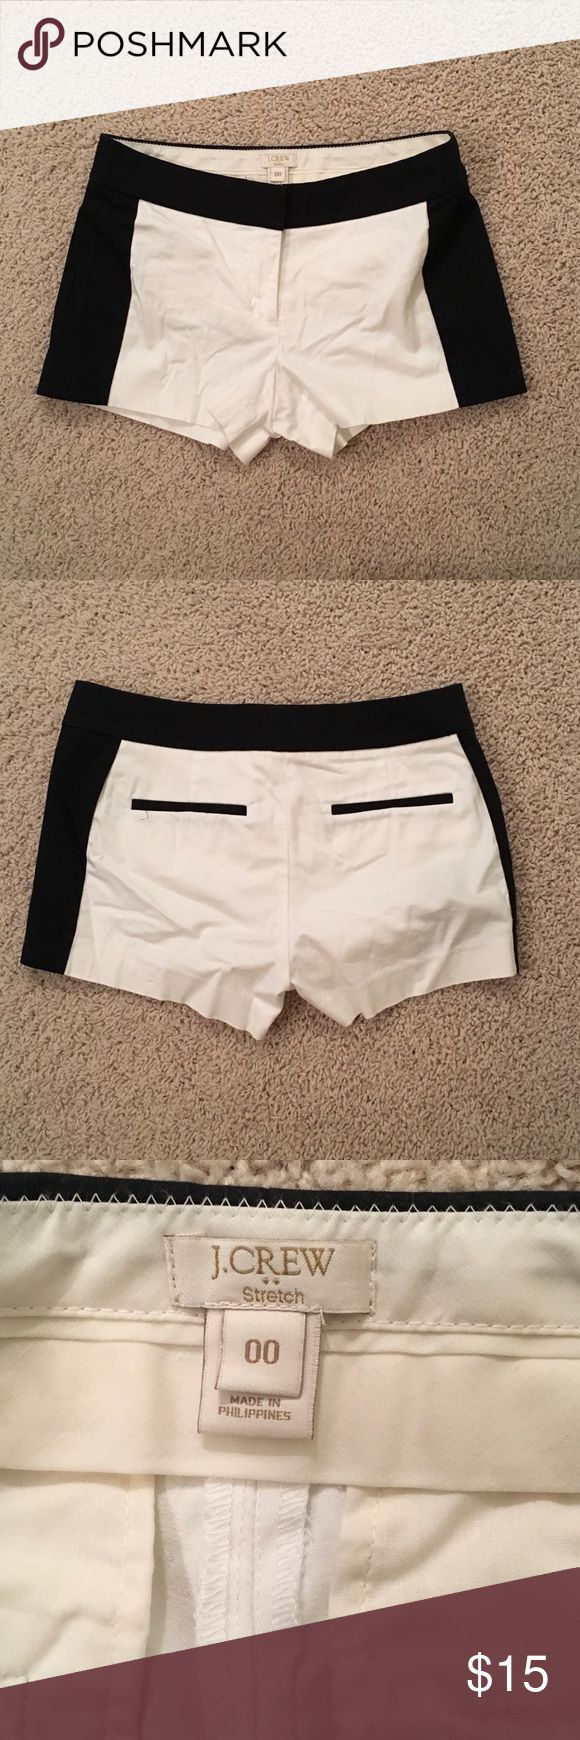 J Crew Tuxedo Black and White Shorts Super cute (and short!) black and white shorts from J Crew. Fabric has a bit of stretch, but not much.  No Stains. Smoke free home.  Gently worn. Size is 00 and I think runs a bit smaller than most J Crew shorts. J. Crew Factory Shorts